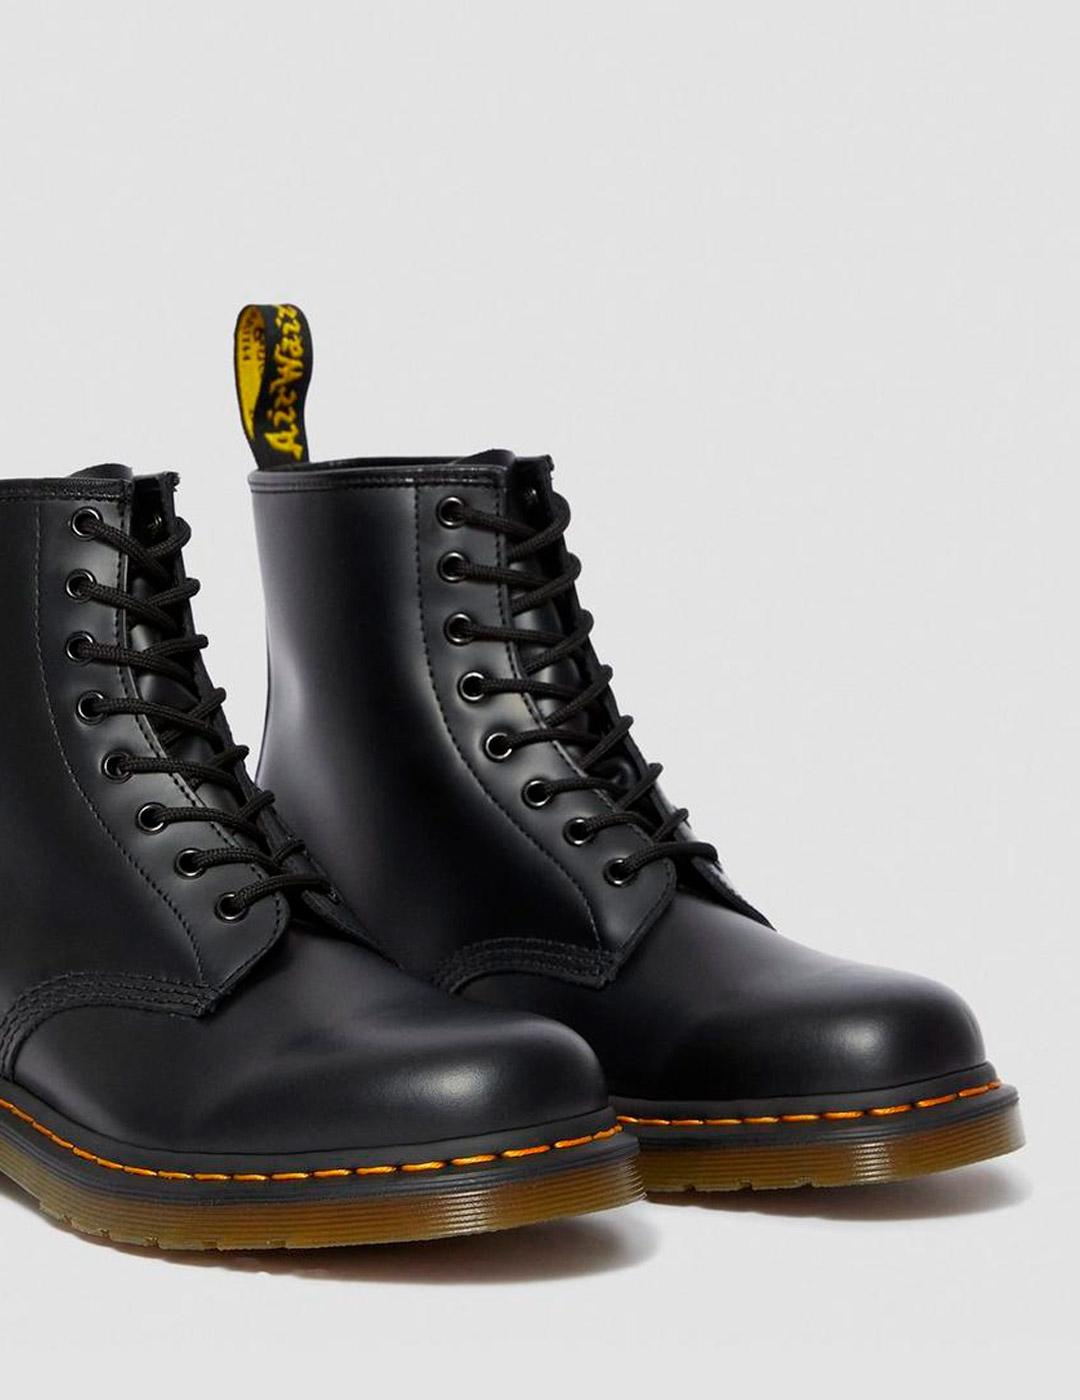 BOTA 1460 EYE SMOOTH BLACK